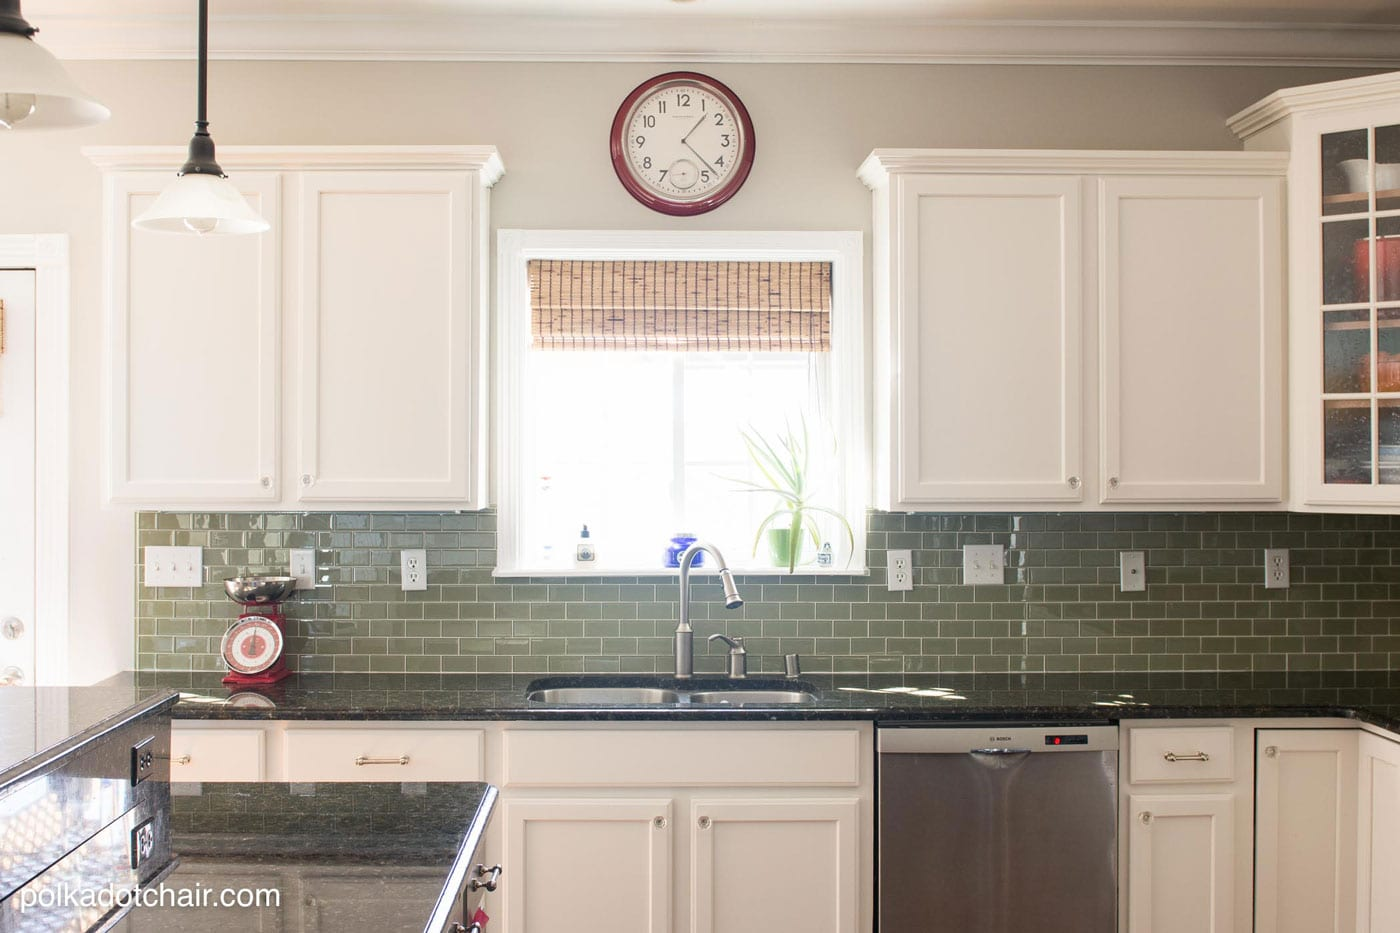 ordinary Best Paint To Spray Kitchen Cabinets #7: How To Paint Kitchen Cabinets How To Paint Kitchen Styleupco